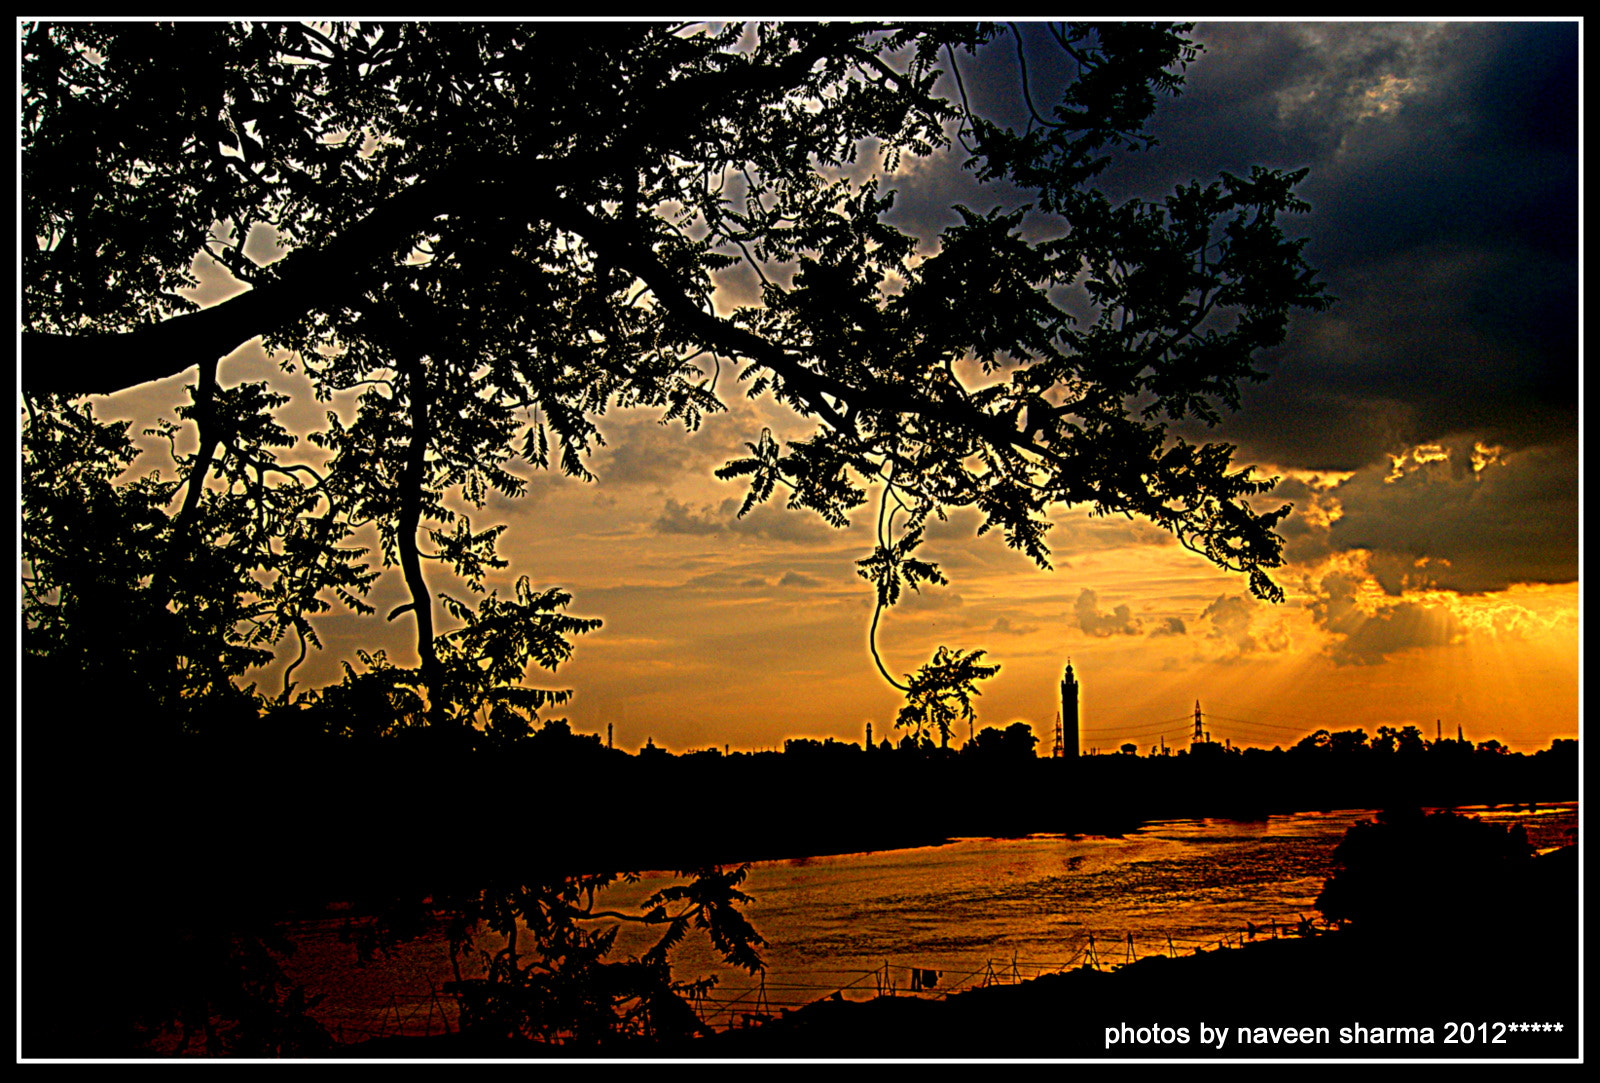 Photograph Monsoonic sunsetting view by naveen sharma on 500px